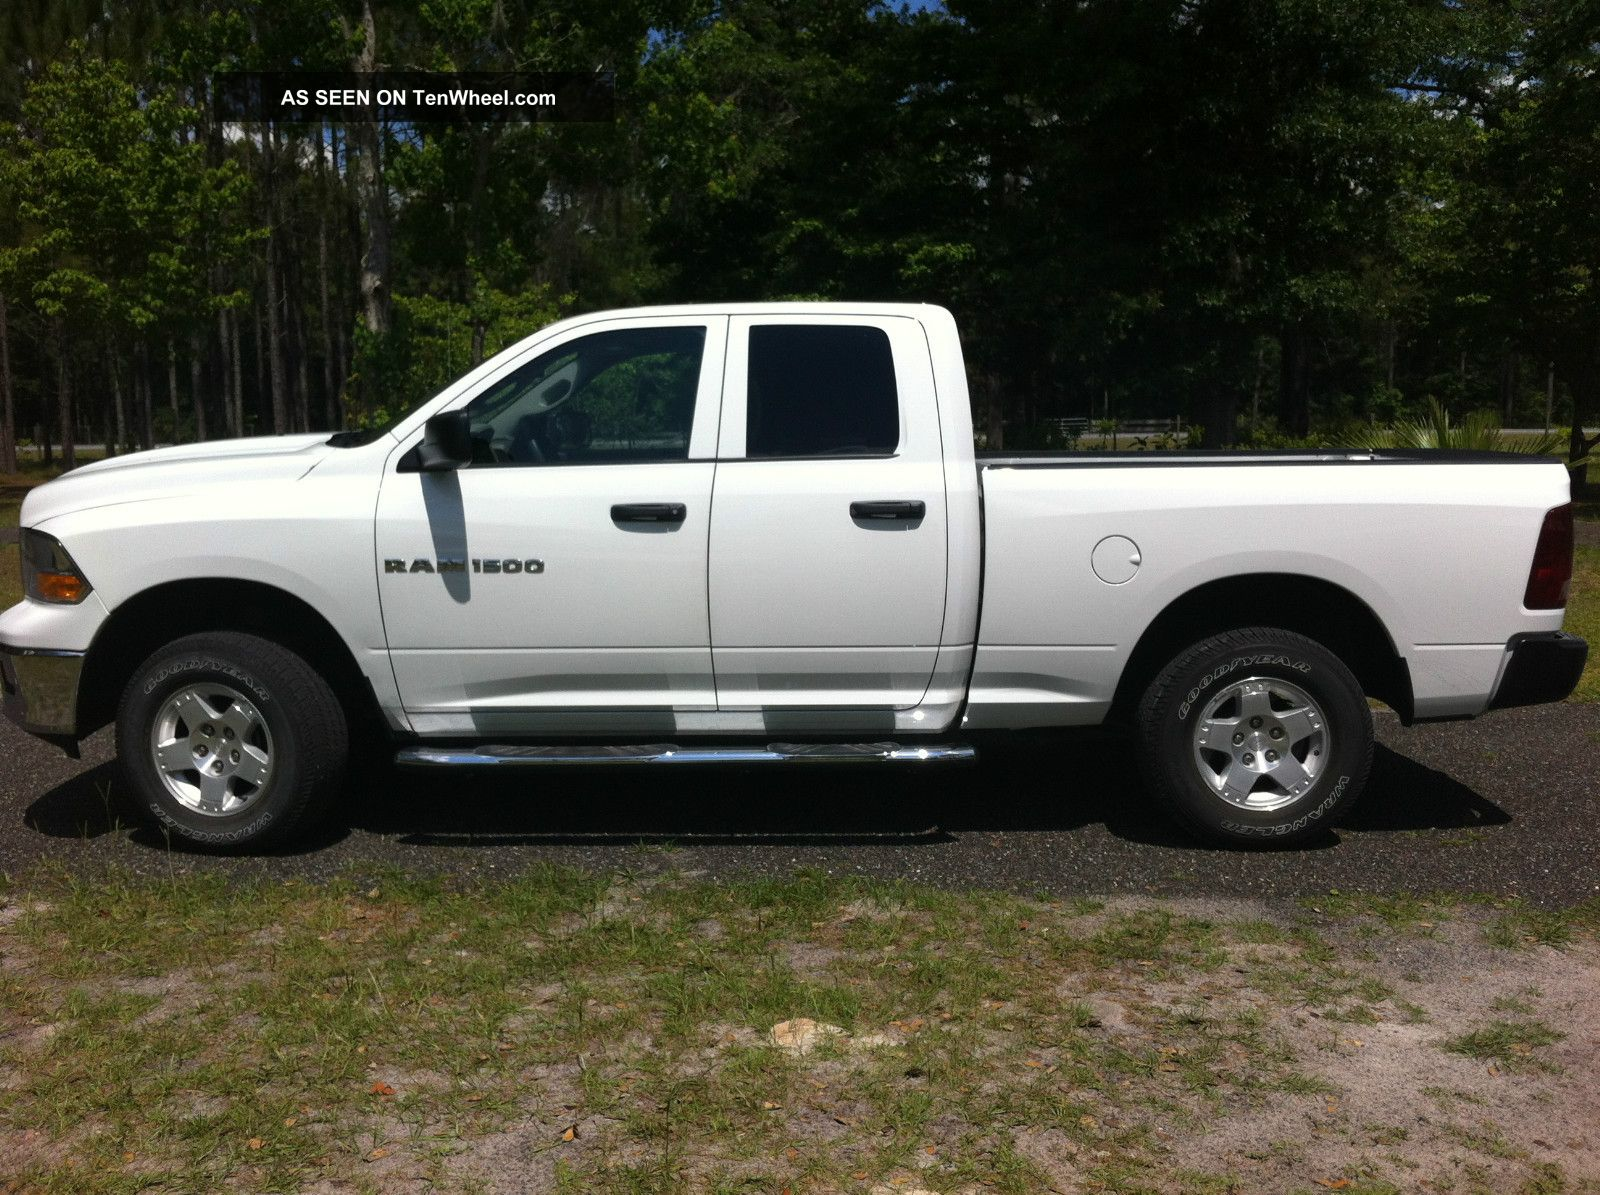 2012 dodge ram 1500 4x4 crew cab v8 ram 1500 photo 1. Black Bedroom Furniture Sets. Home Design Ideas